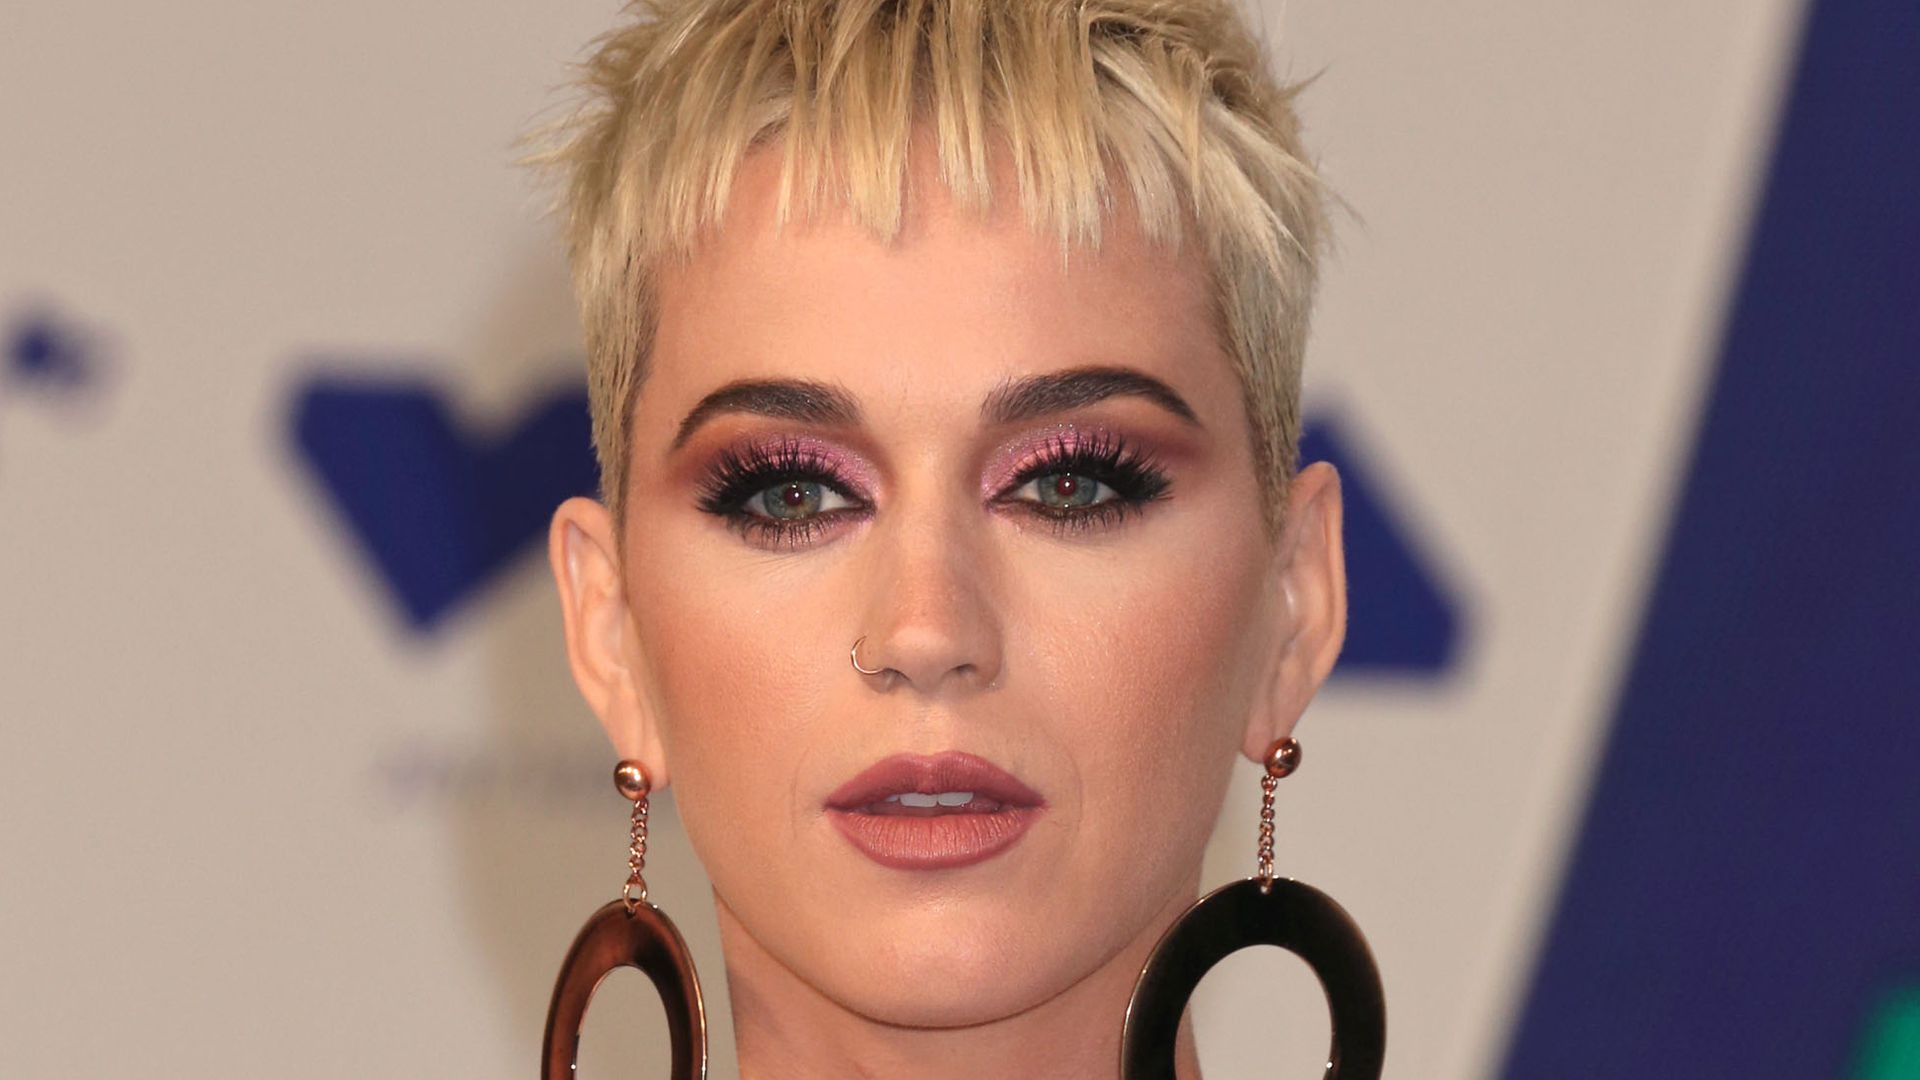 Katy Perry Trial Nun Collapsed In Court And Died Tech2